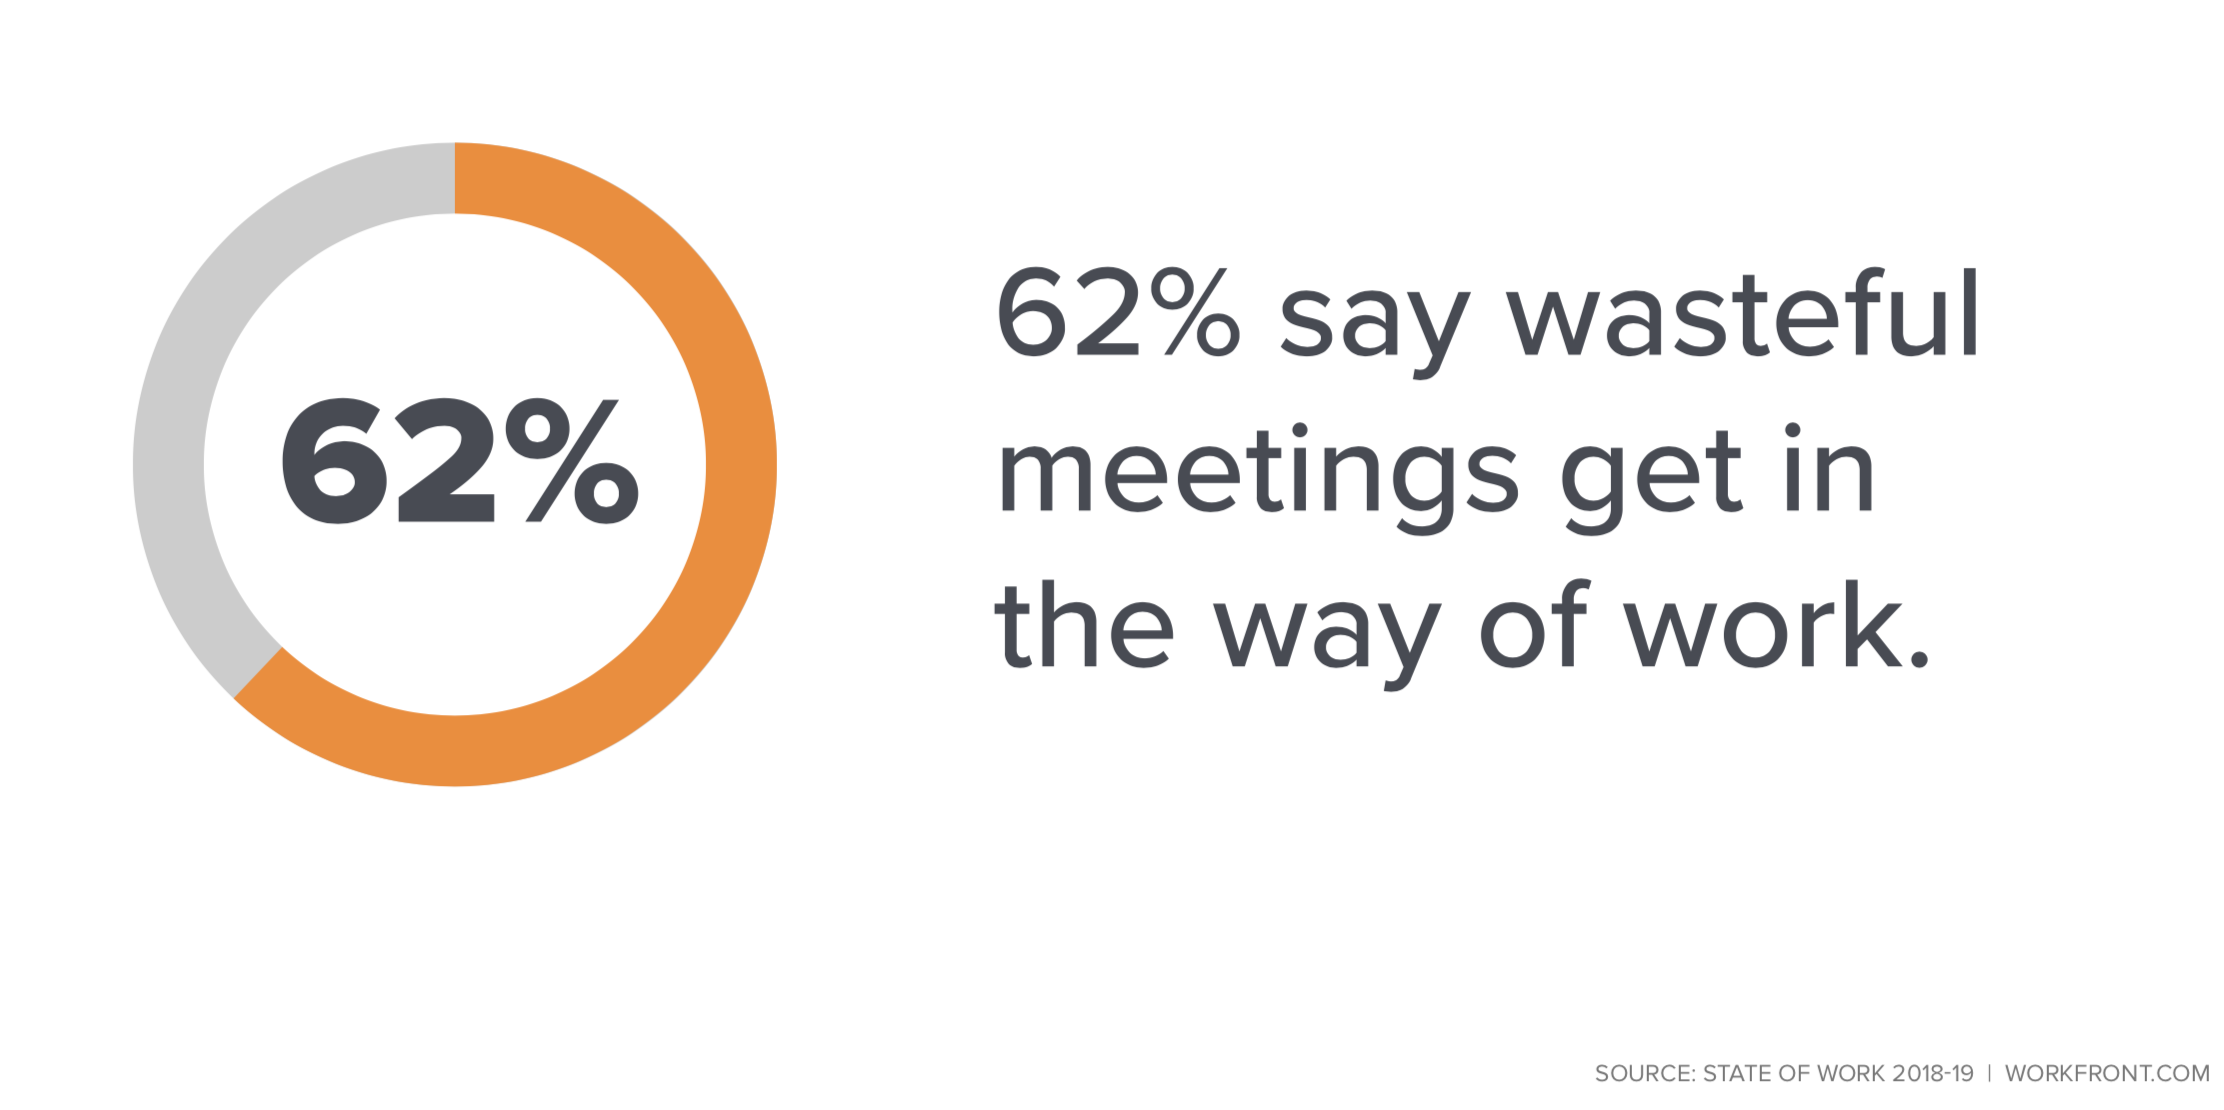 wasteful meetings